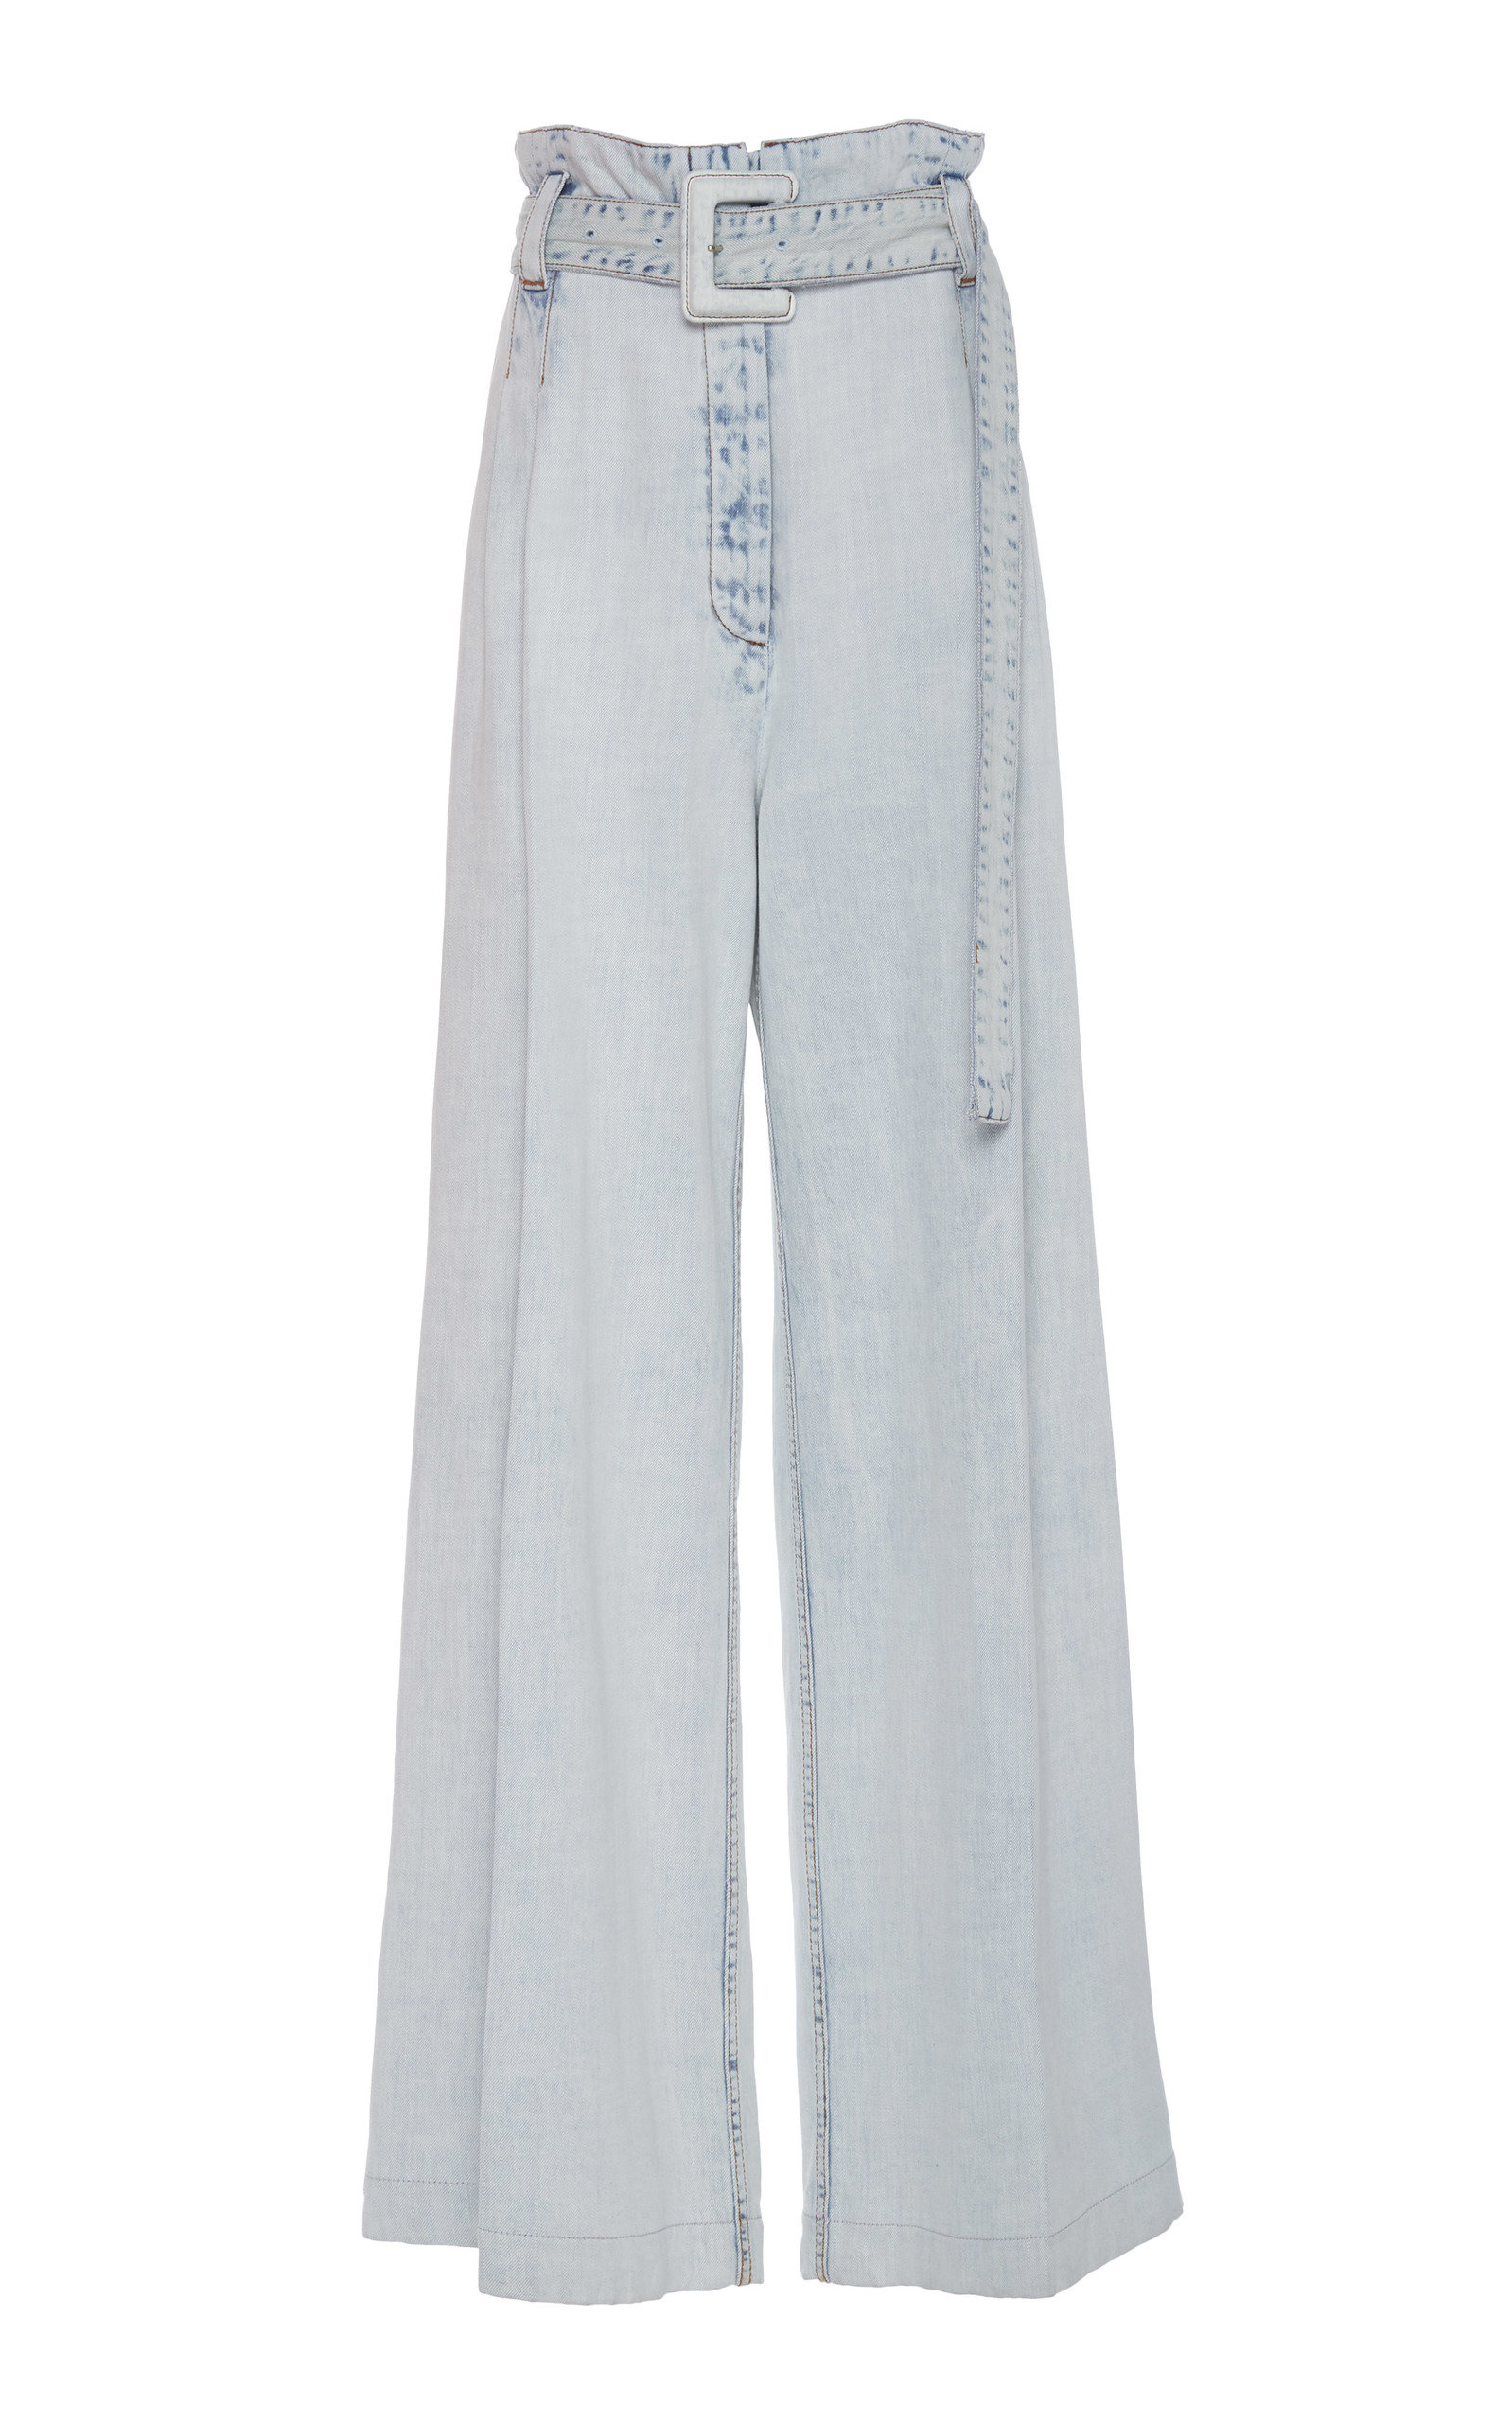 Proenza Schouler Jeans High-Rise Washed Jeans